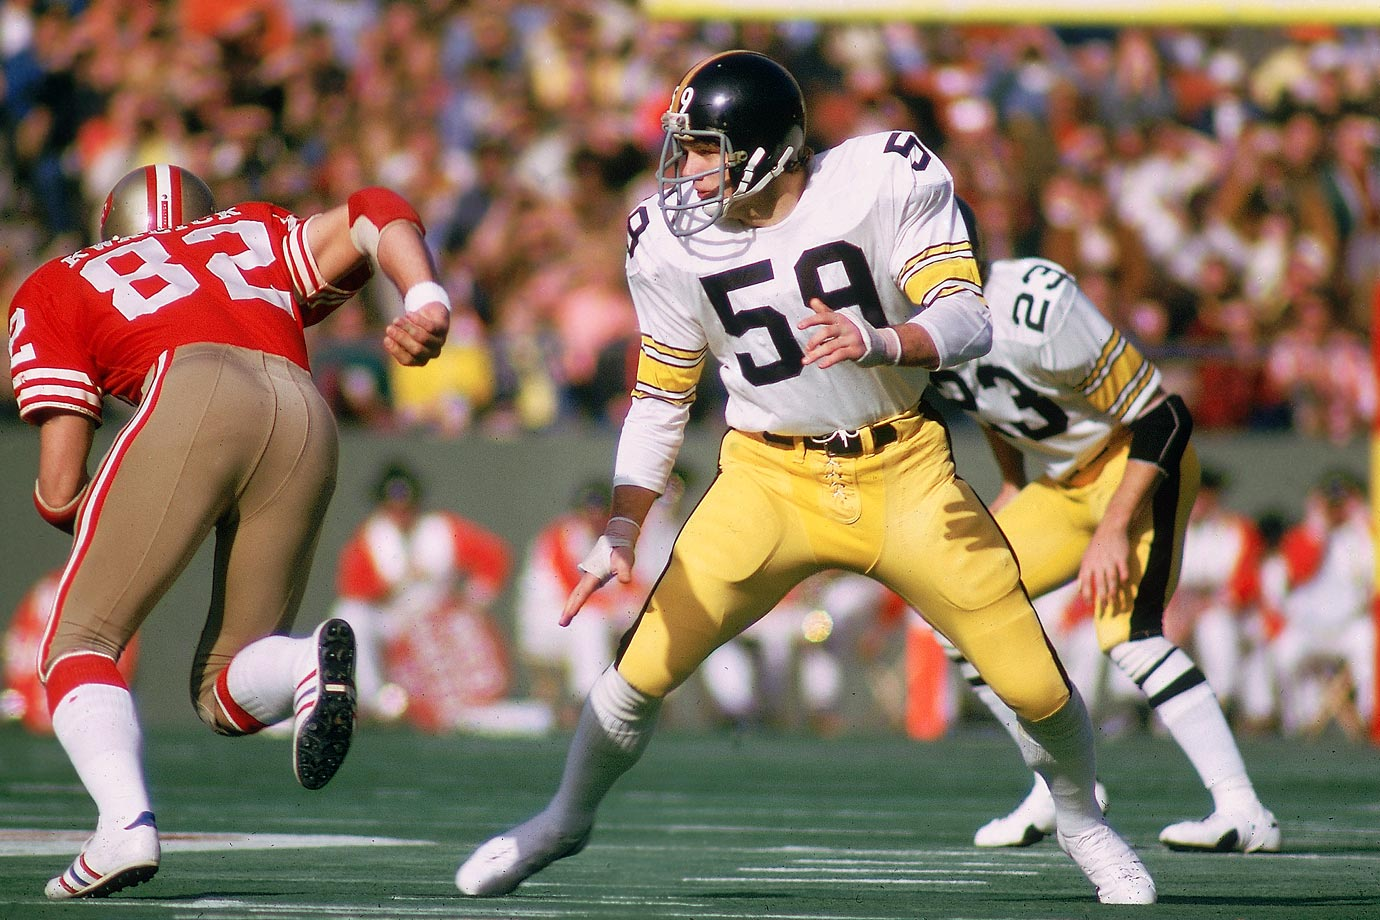 As good as Lambert was, it's Ham who's thought by many to be the best linebacker of the Steel Curtain defense, and one of the best in NFL history. A ruthlessly intelligent player who almost never stepped out of position, Ham was a first-team All-Pro every year from 1974 through '79, which just happened to line up with Pittsburgh's run of four Super Bowl titles in six years.